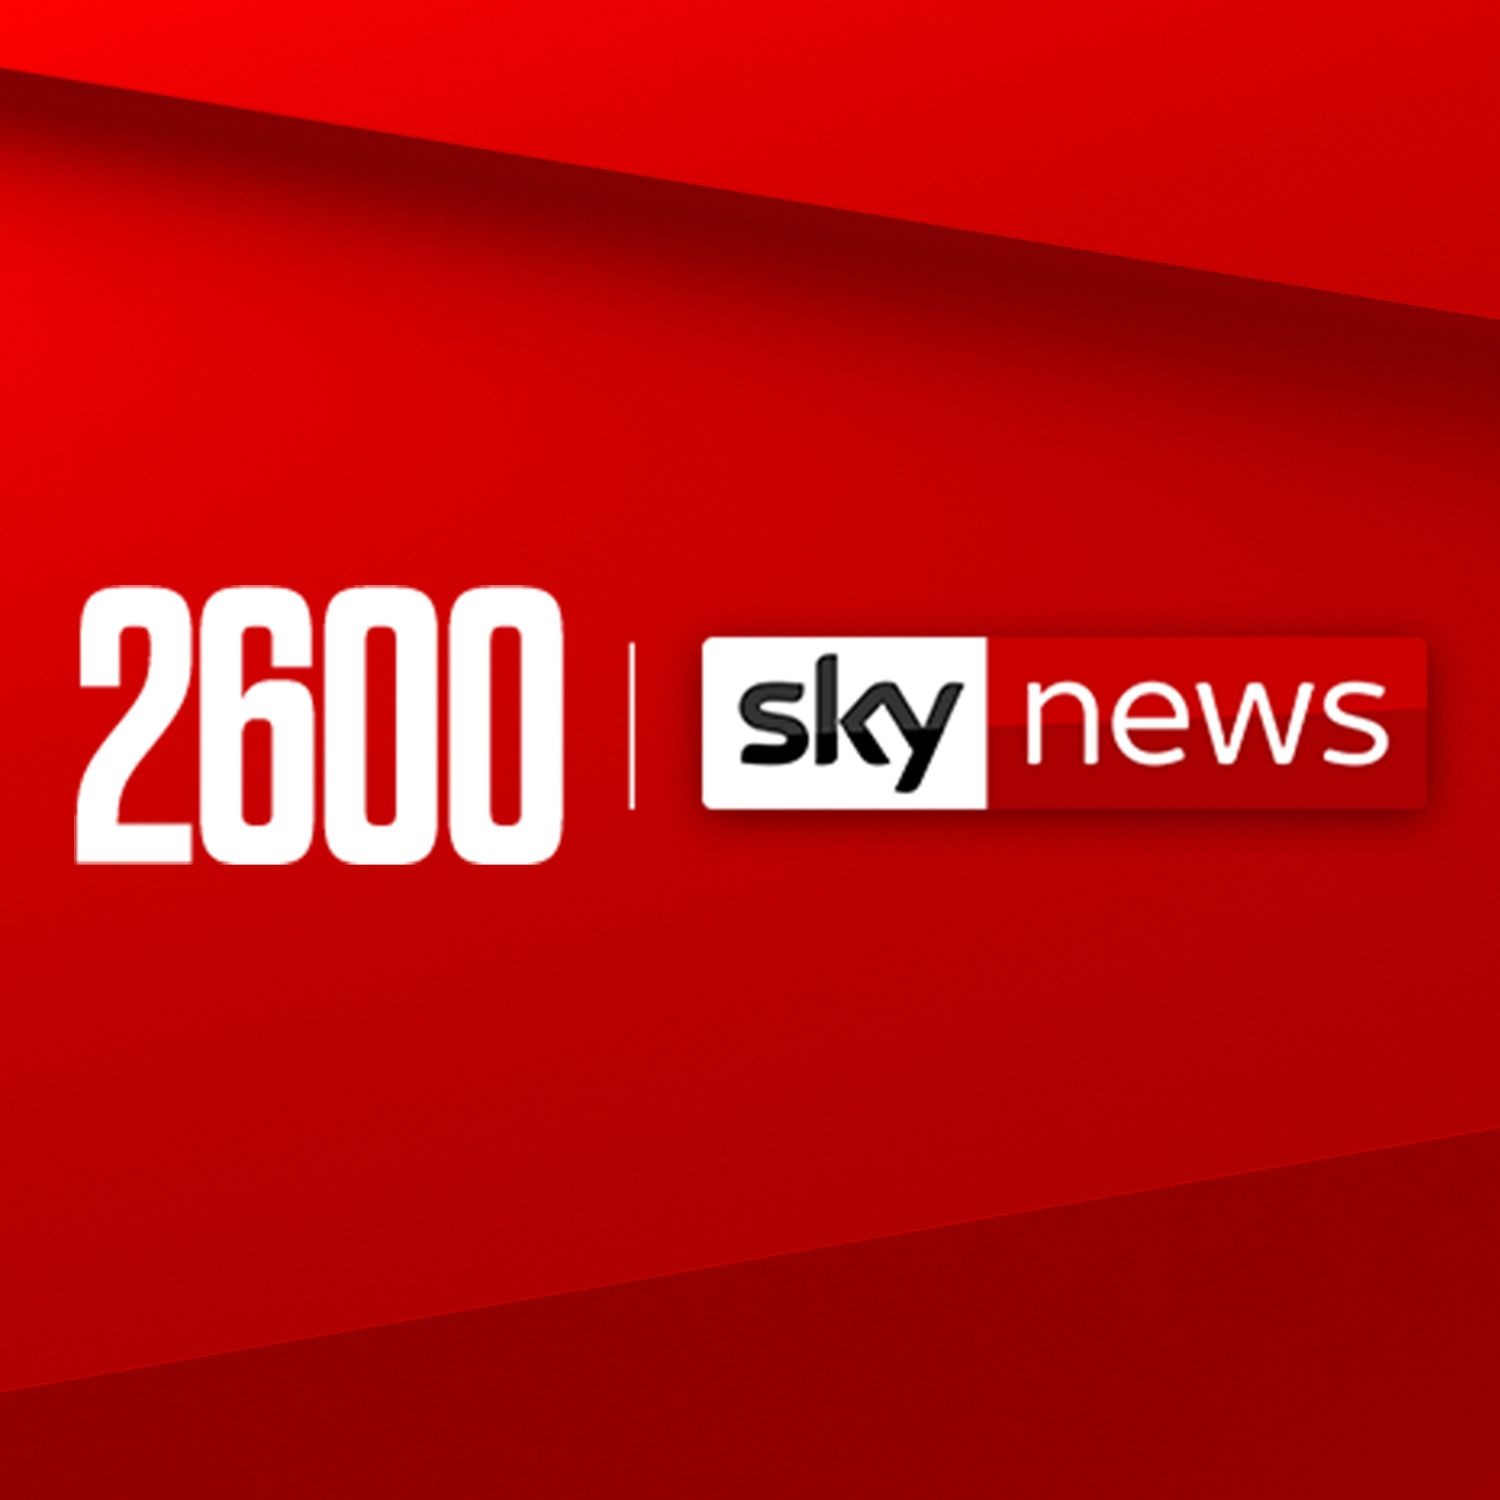 Sky News - 2600 Talks